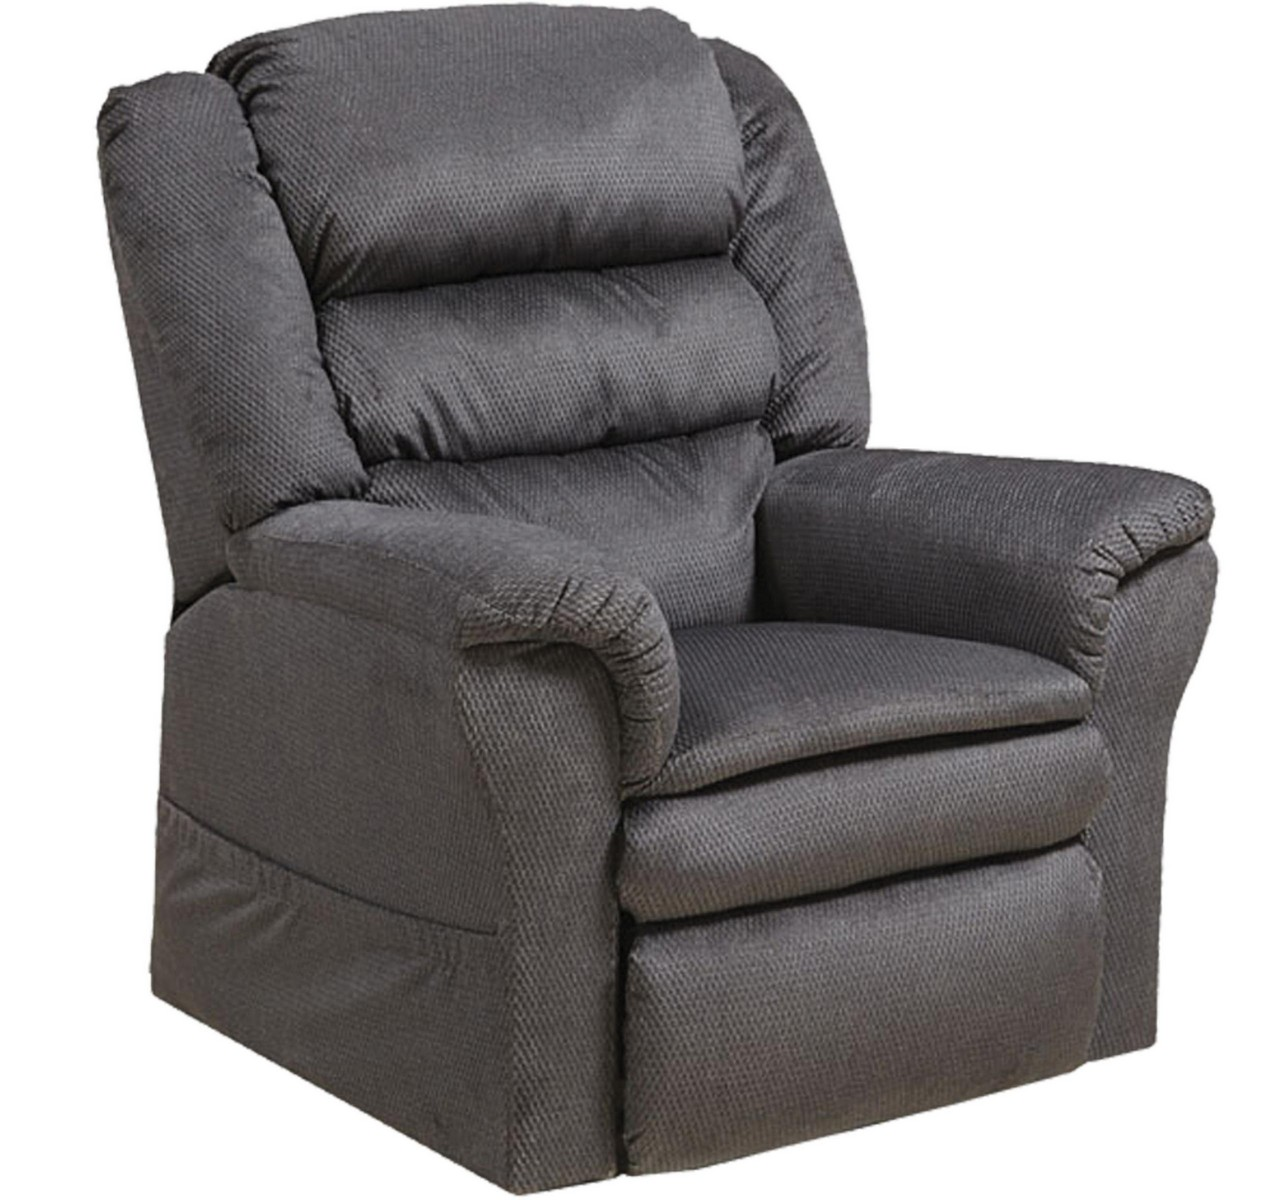 Catnapper Chair Catnapper Preston Power Lift Recliner With Pillowtop Seat